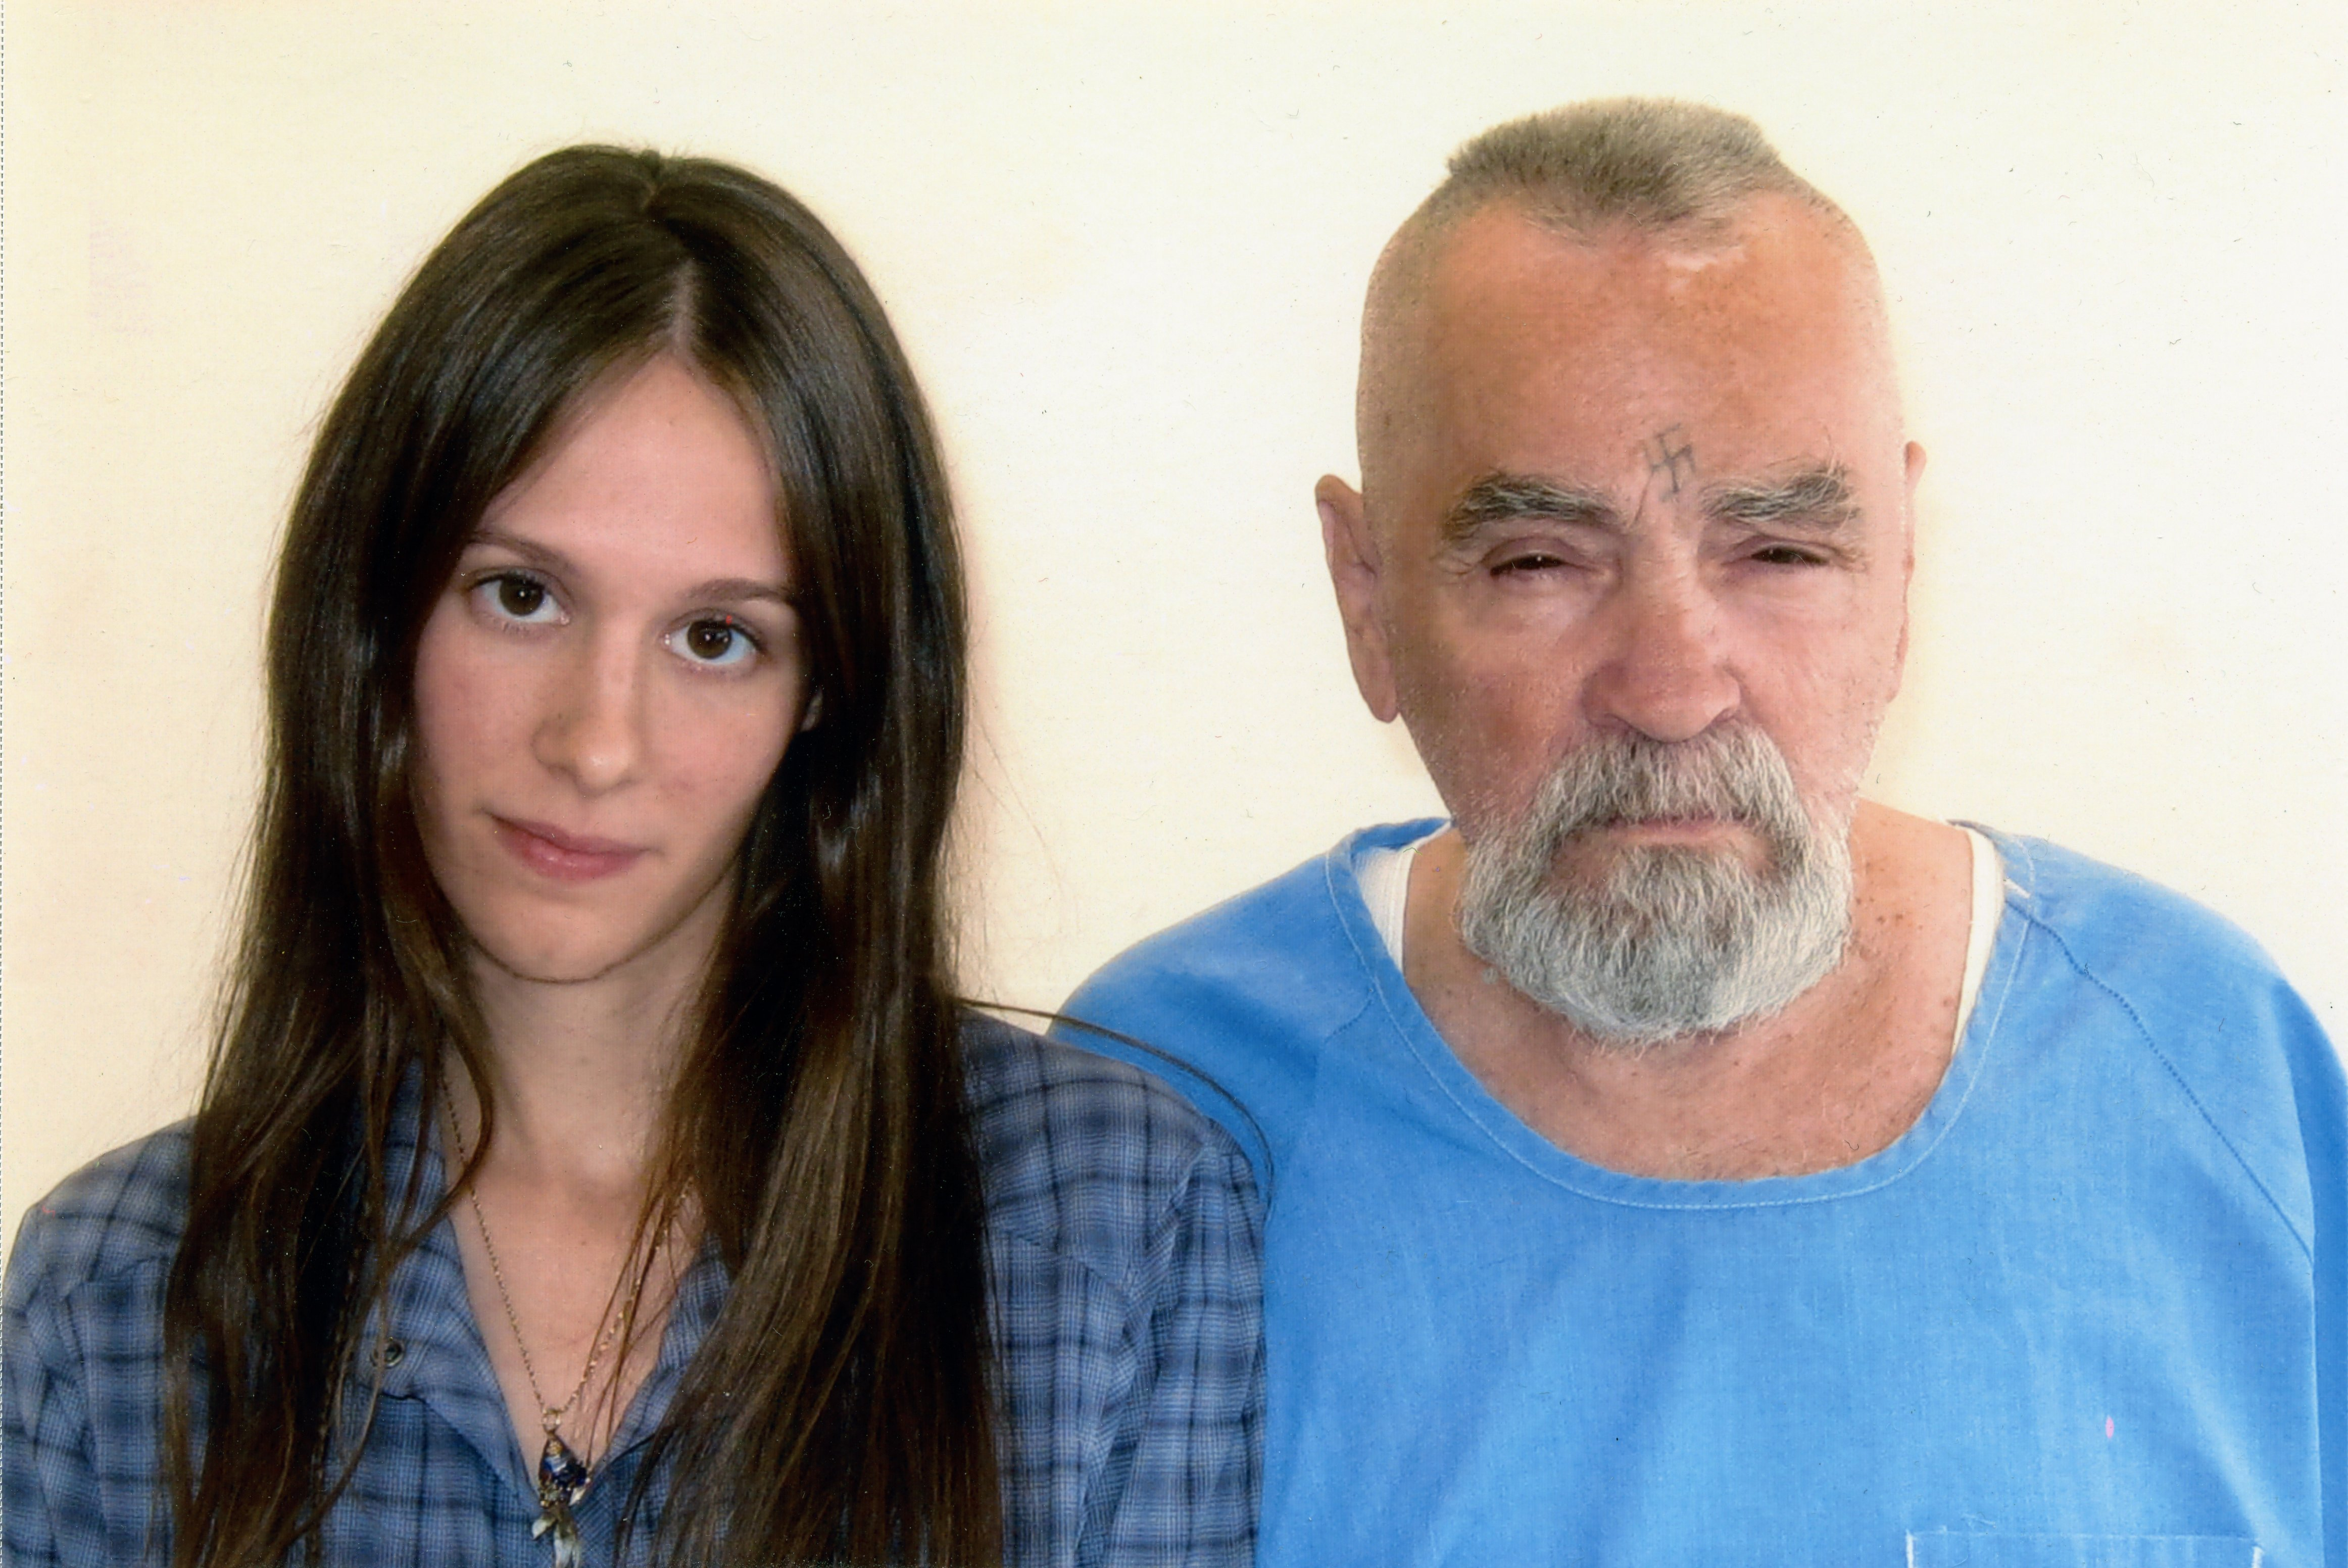 From Left: Afton Elaine Burton and Charles Manson, imprisoned for life for association with a series of murders in the 1960s in Corcoran, Calif. on Aug. 14, 2011.